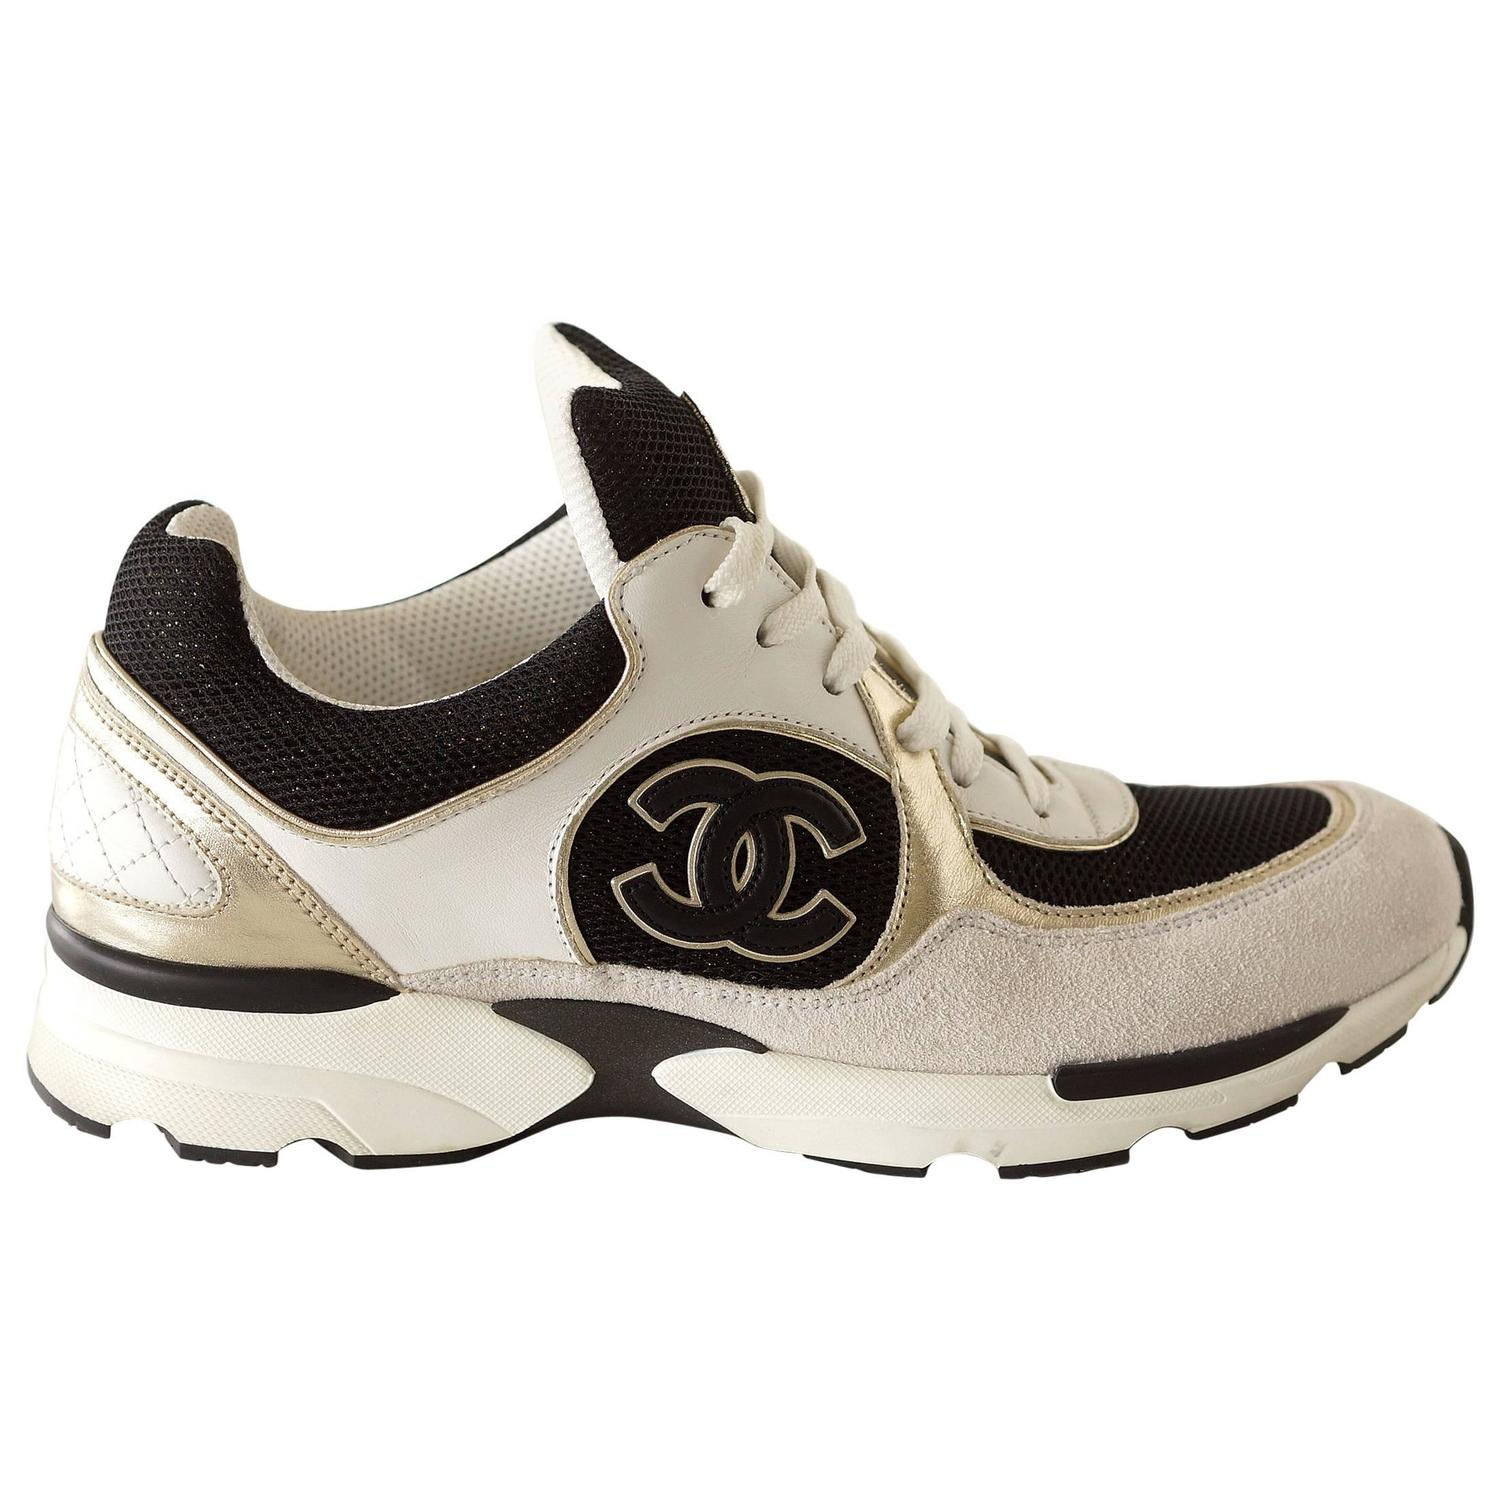 New Chanel Tennis Shoes